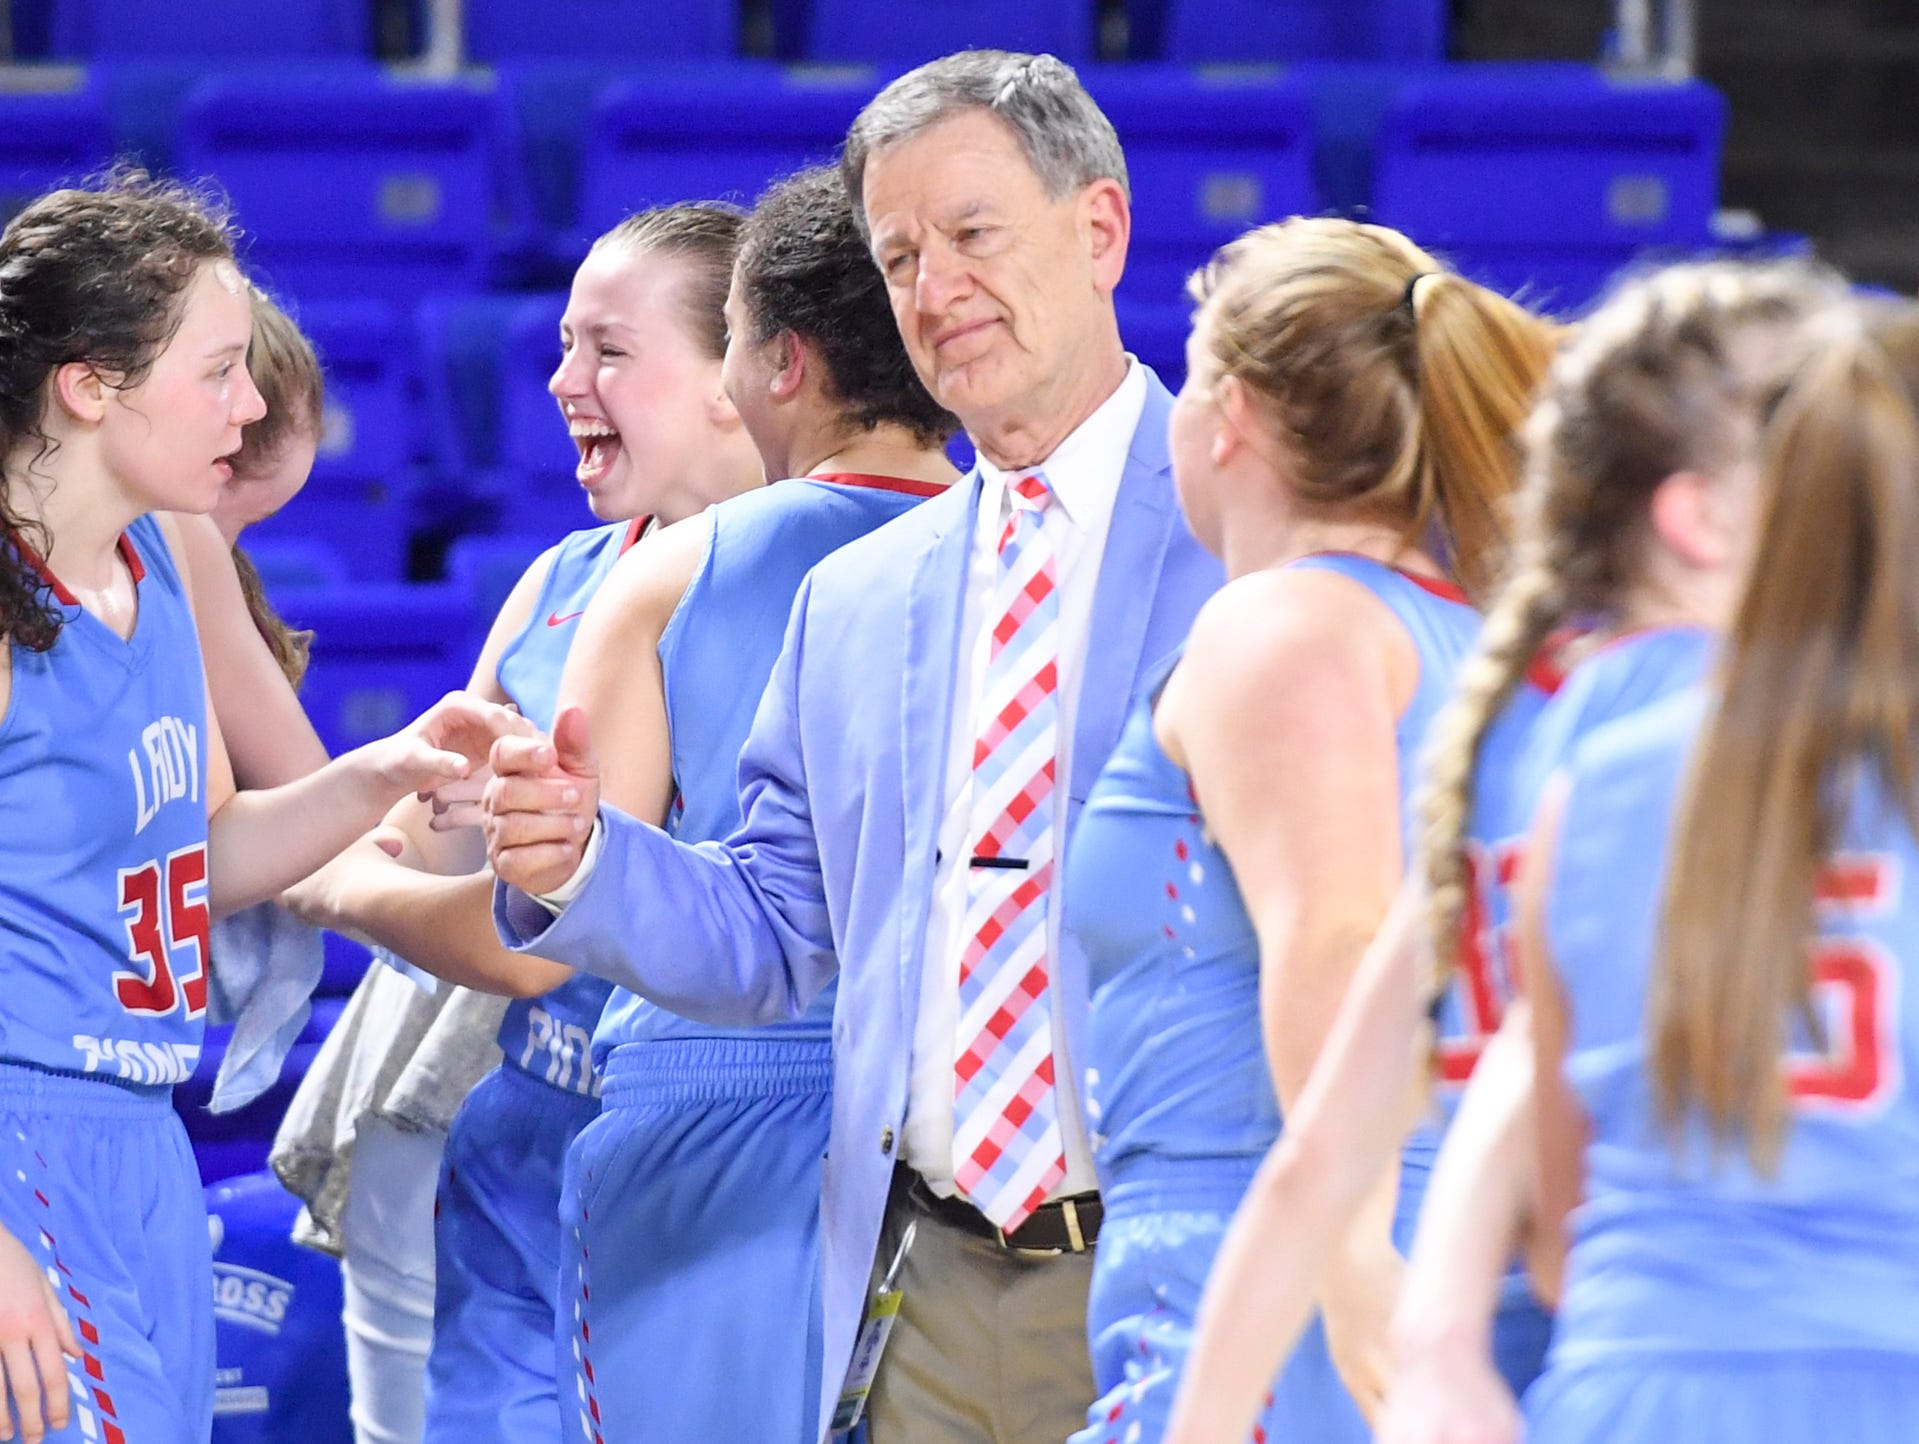 Gibson County's head girls basketball coach Mitch Wilkins celebrates with his team at the end of their Class A semifinal game against Midway, Friday, March 8, 2019, in  Murfreesboro. Gibson County defeated Midway, 75-61.